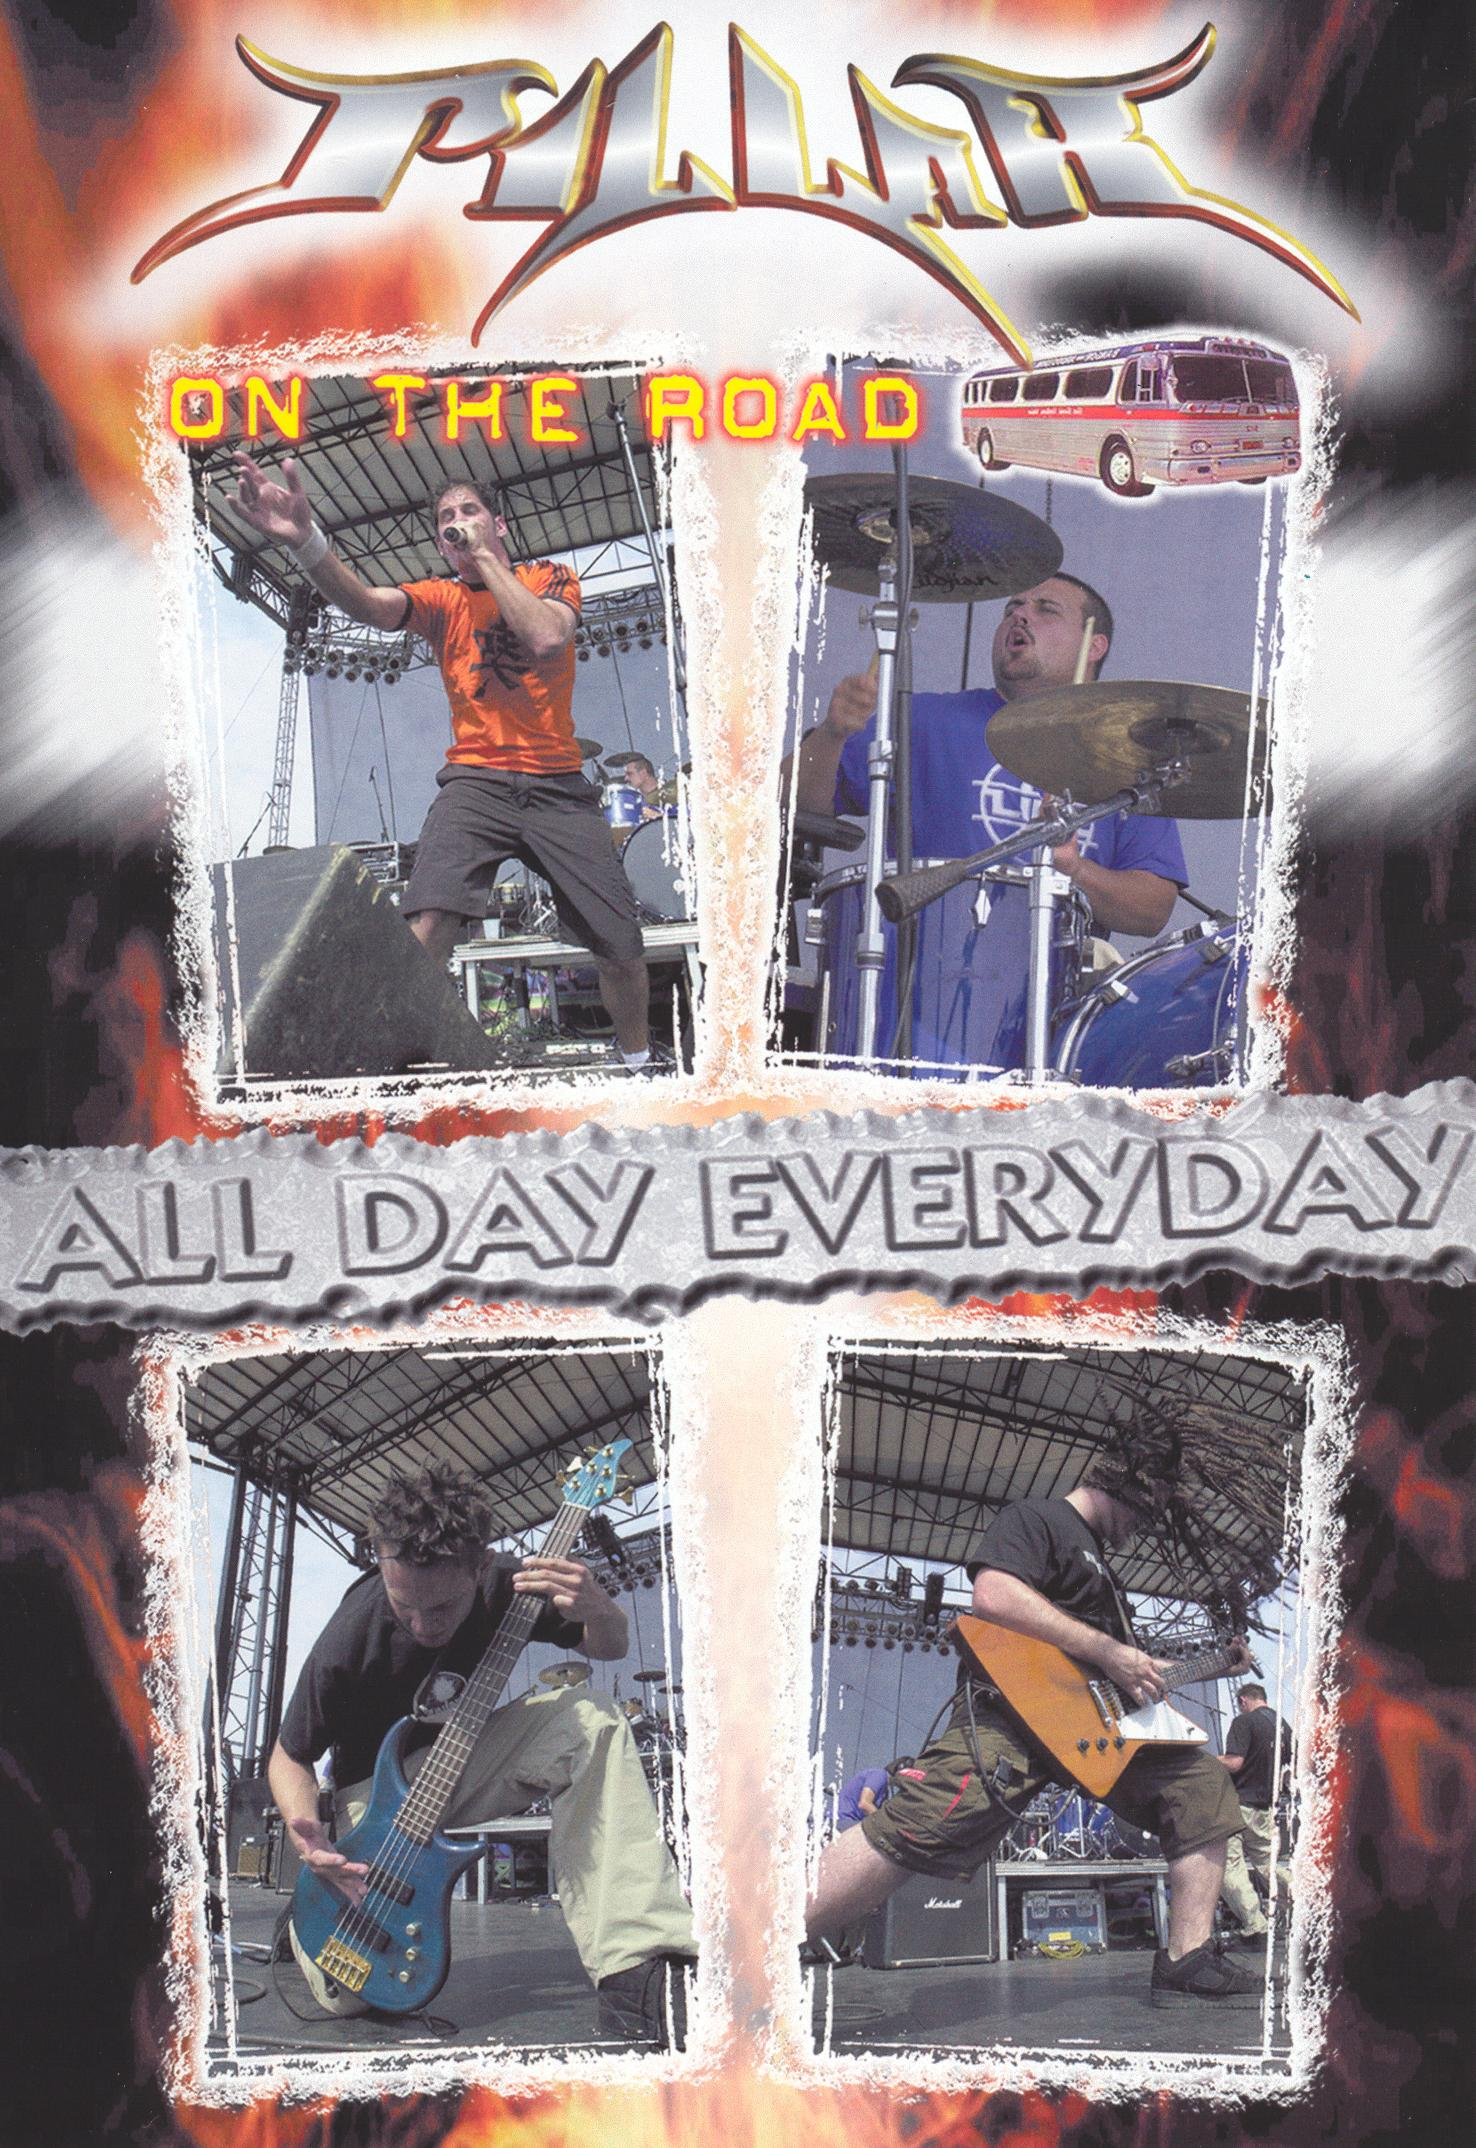 Pillar: All Day Everyday - On the Road